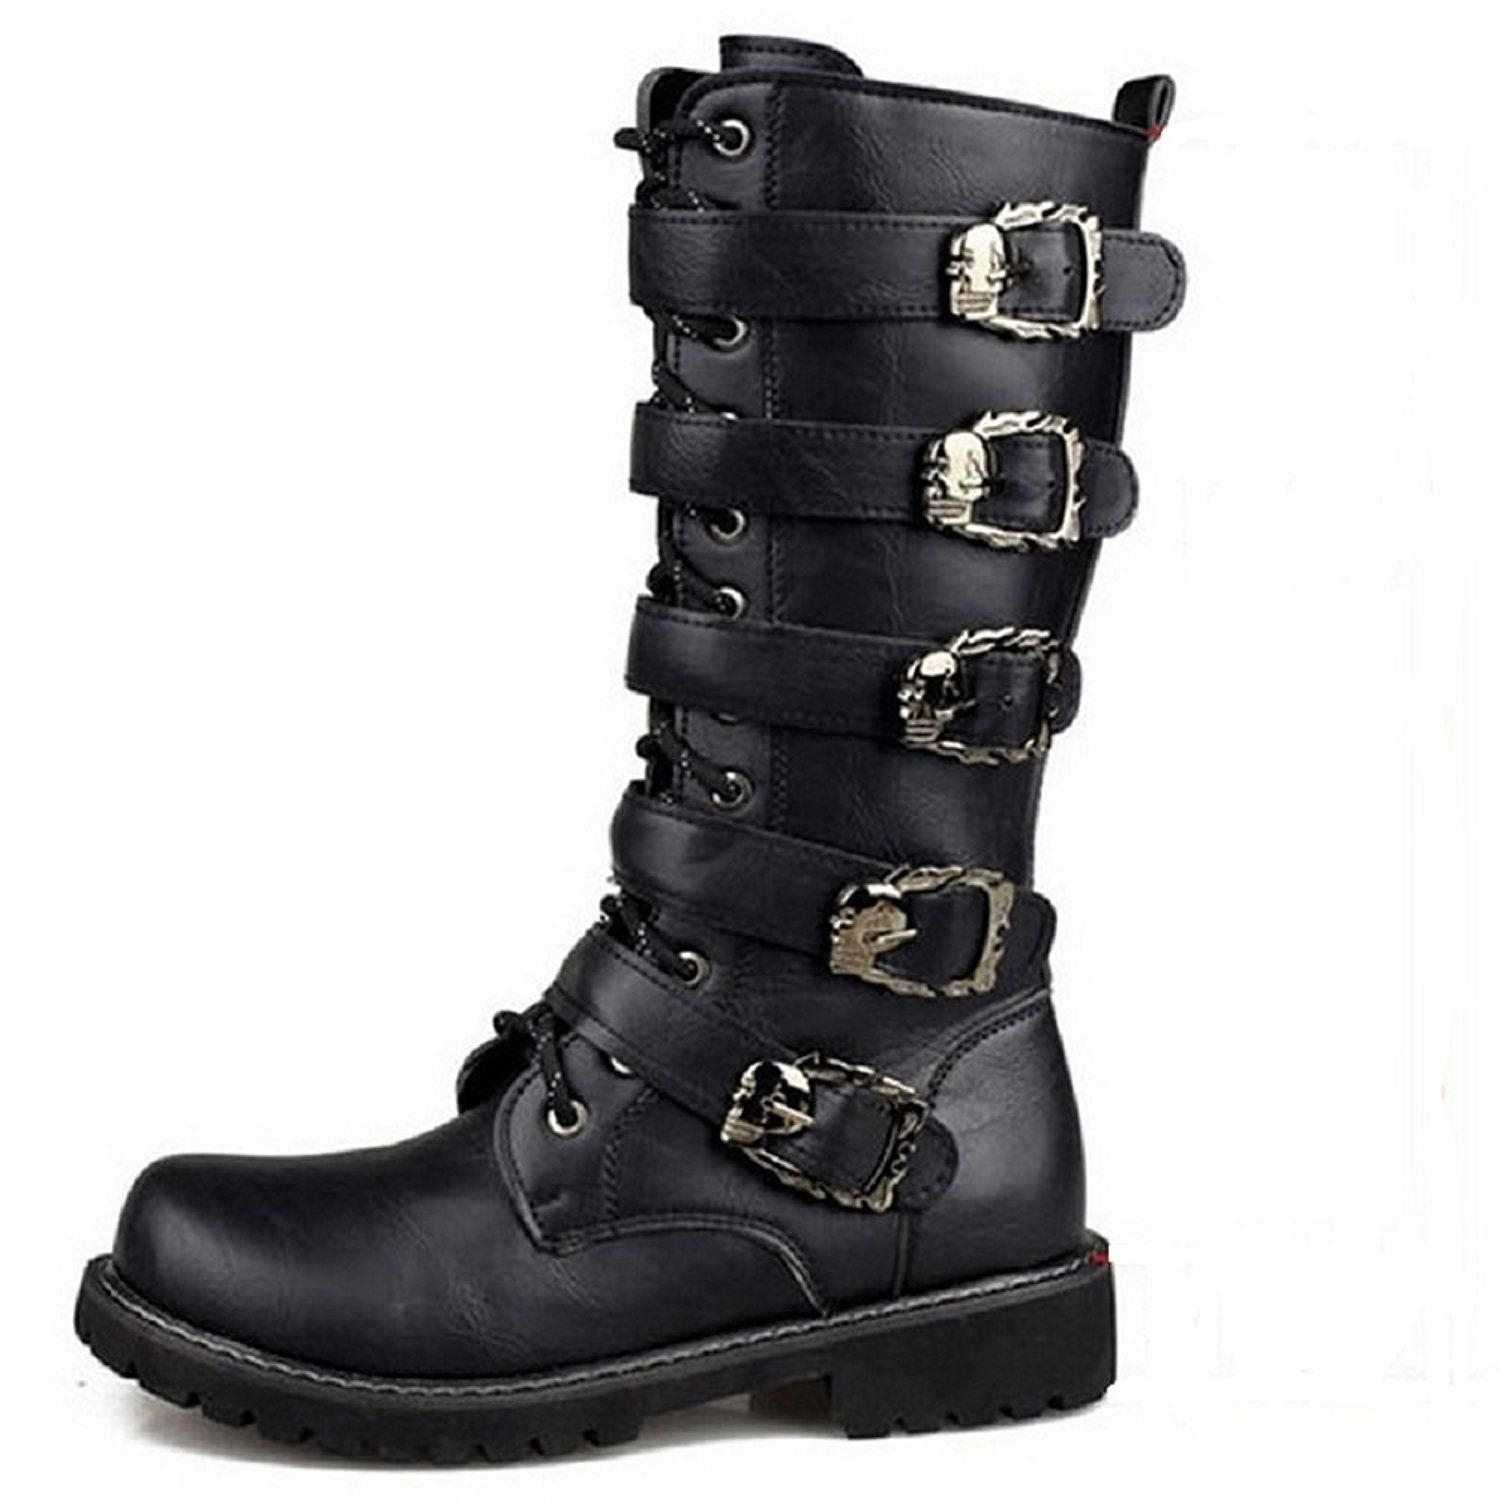 Motorcycle Boots Black Retro Combat Boots with Belt Buckle Punk Rock Leather  Military Boots Martin for